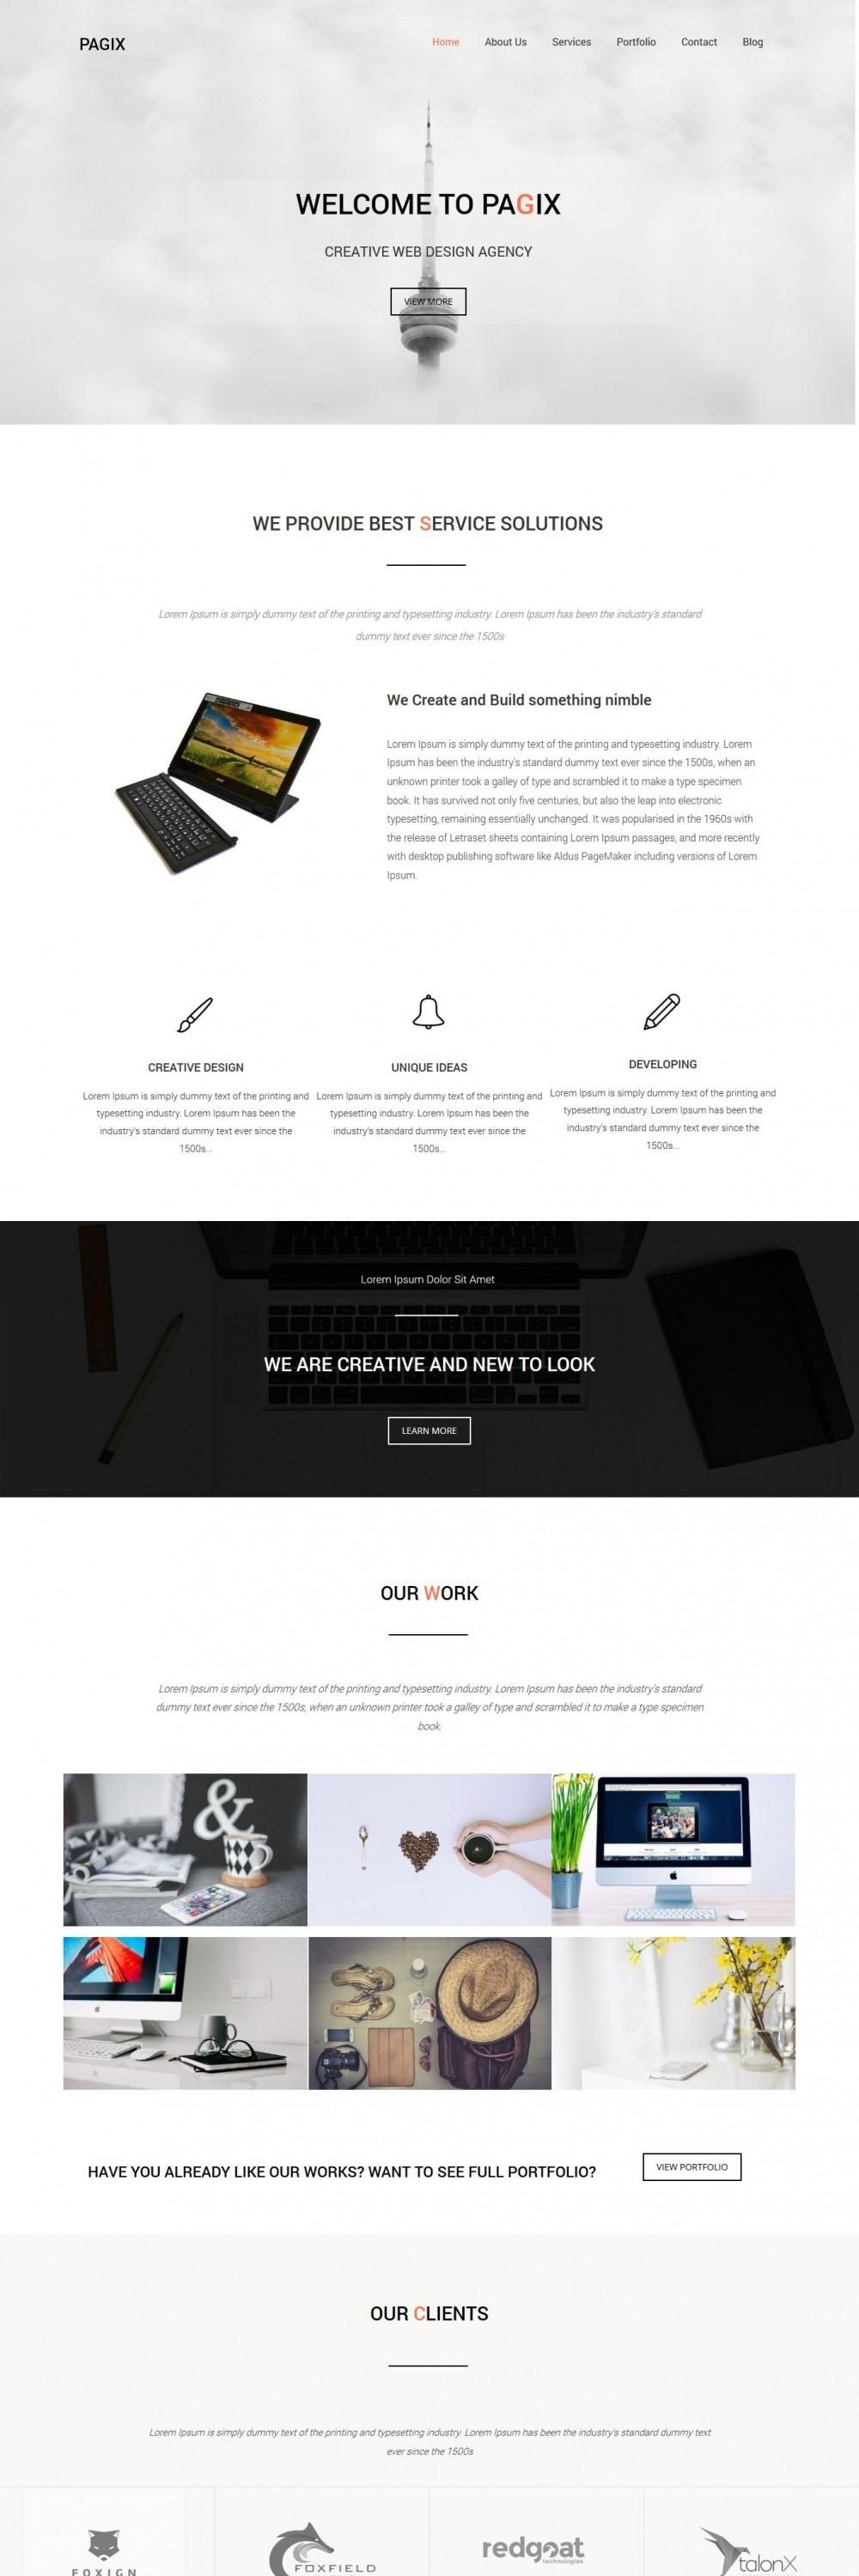 pagix web design studio html template